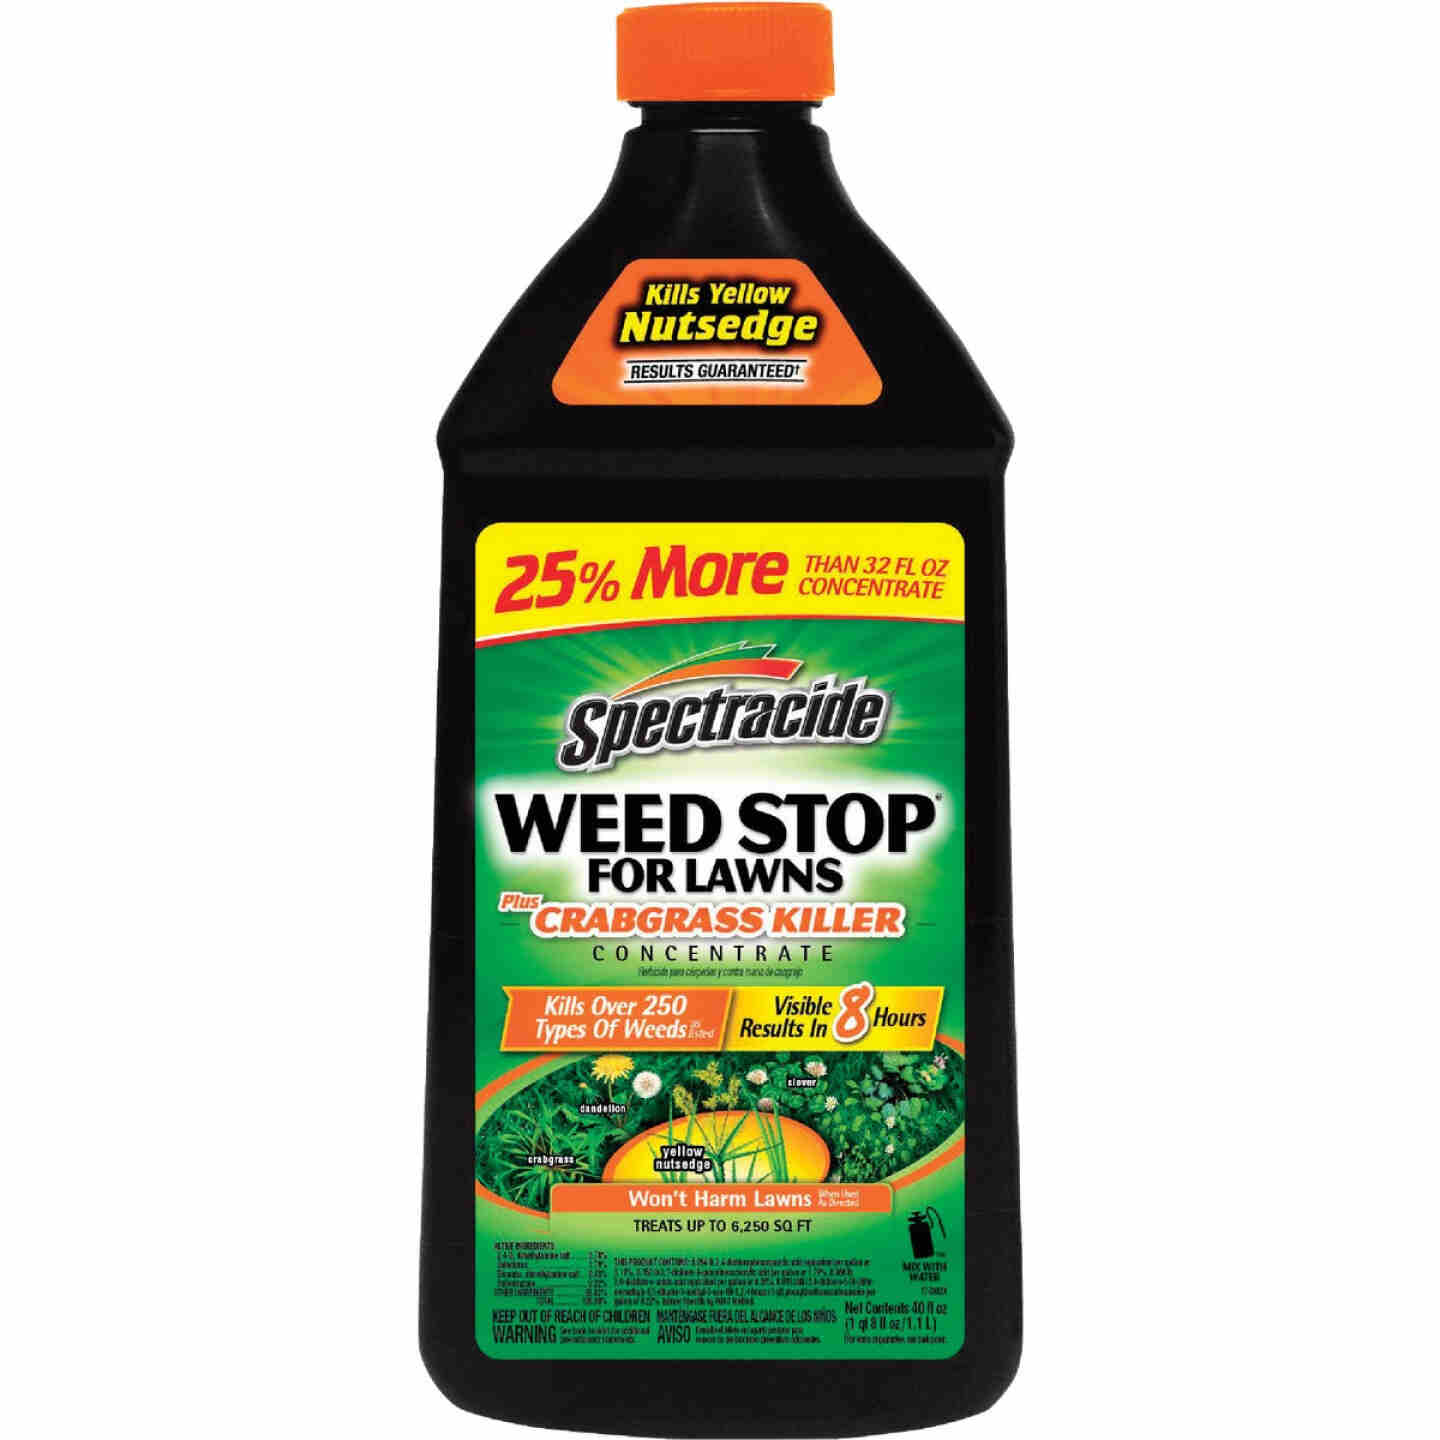 Spectracide Weed Stop 32 Oz. Concentrate Crabgrass & Weed Killer Image 1